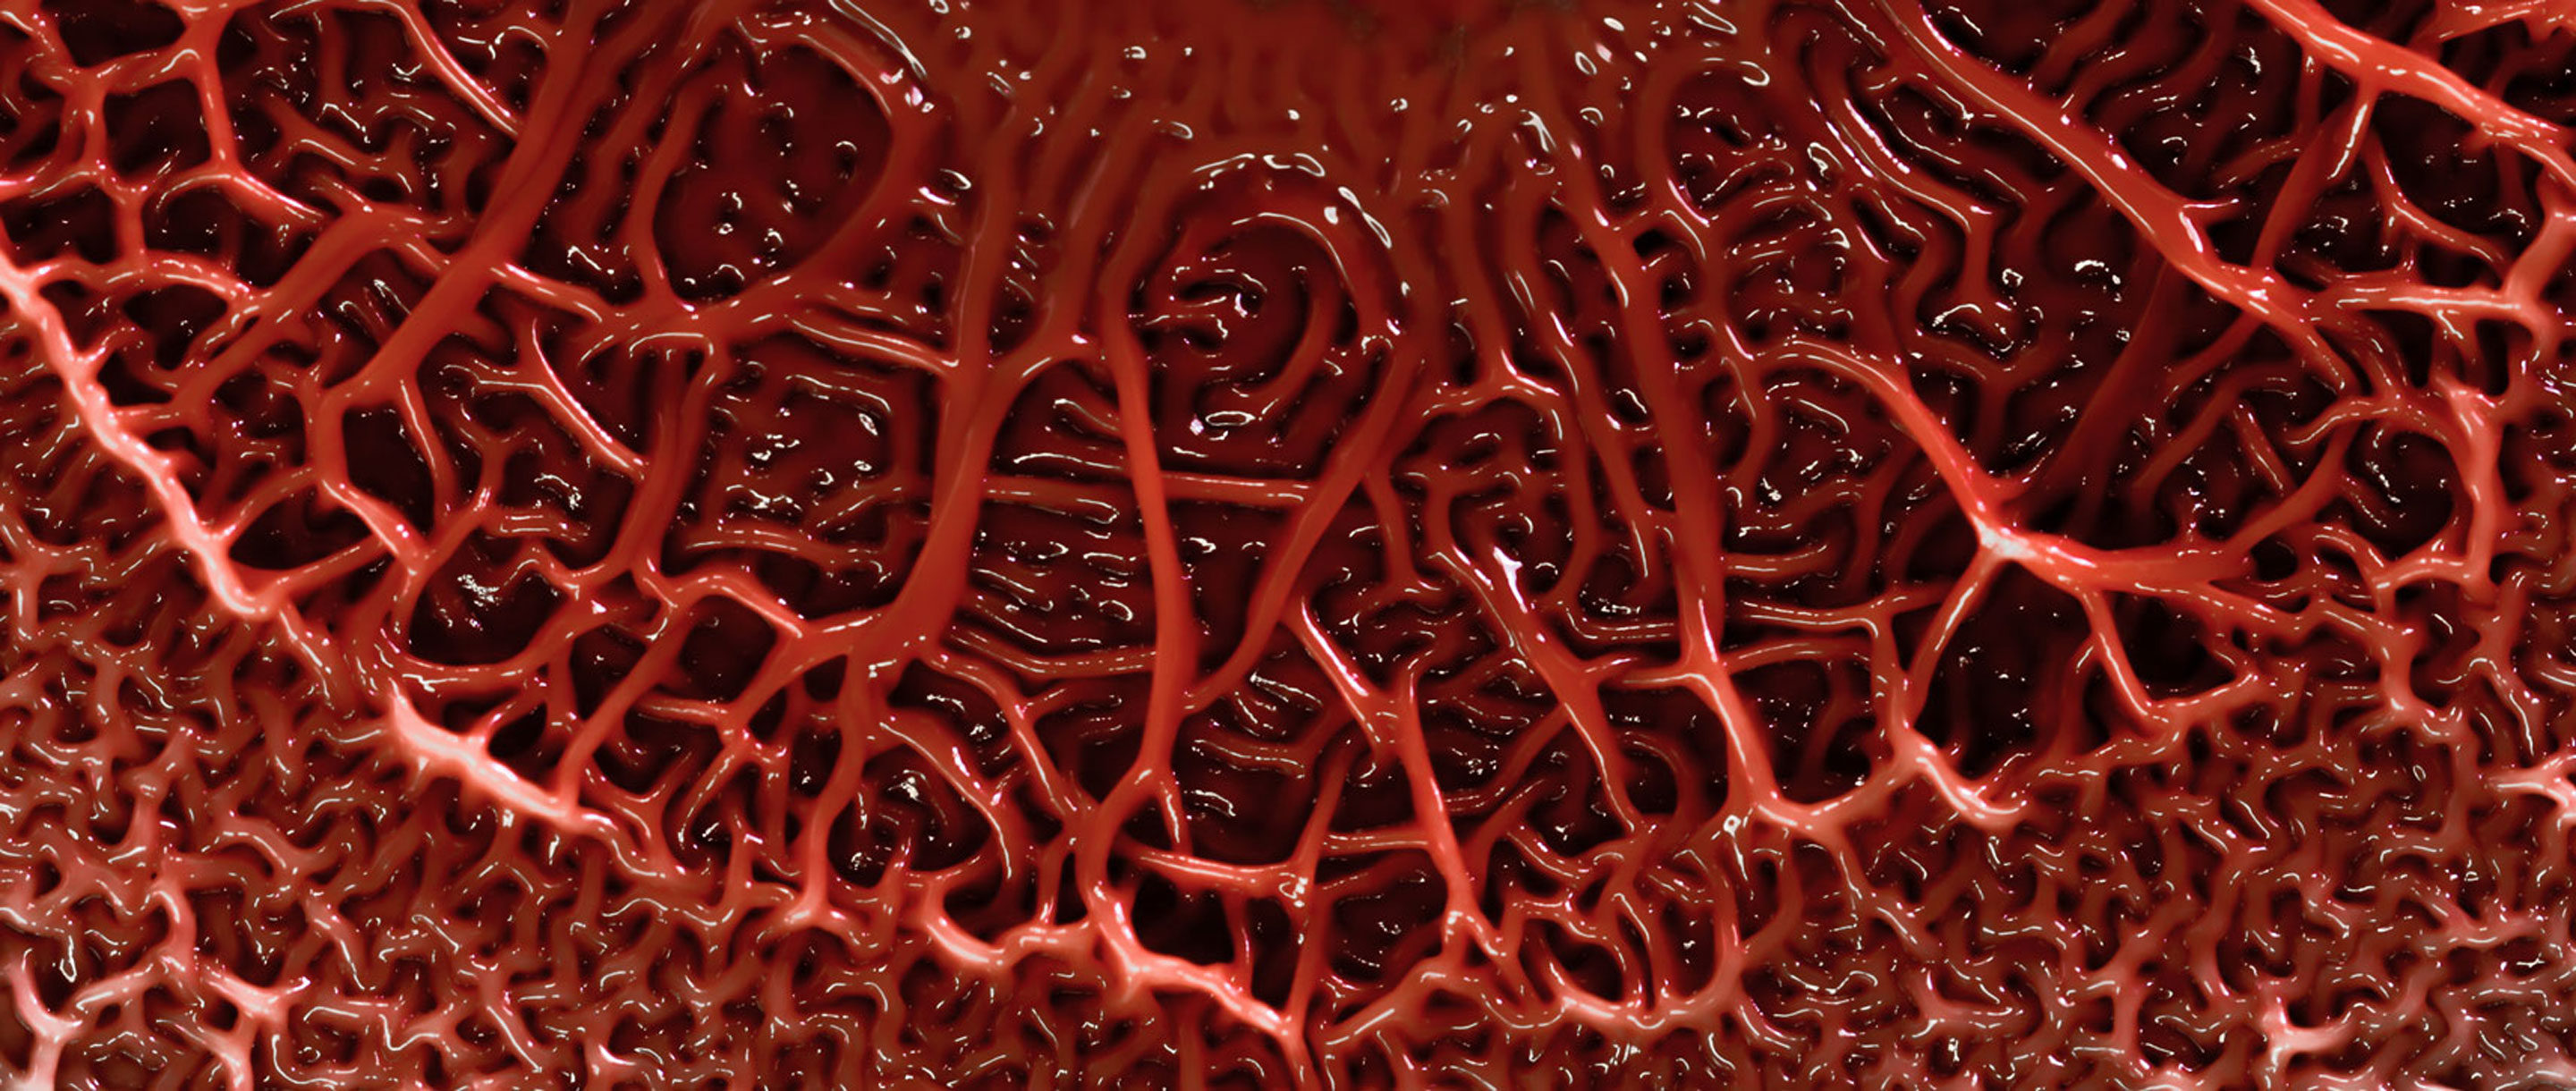 Red slime mold